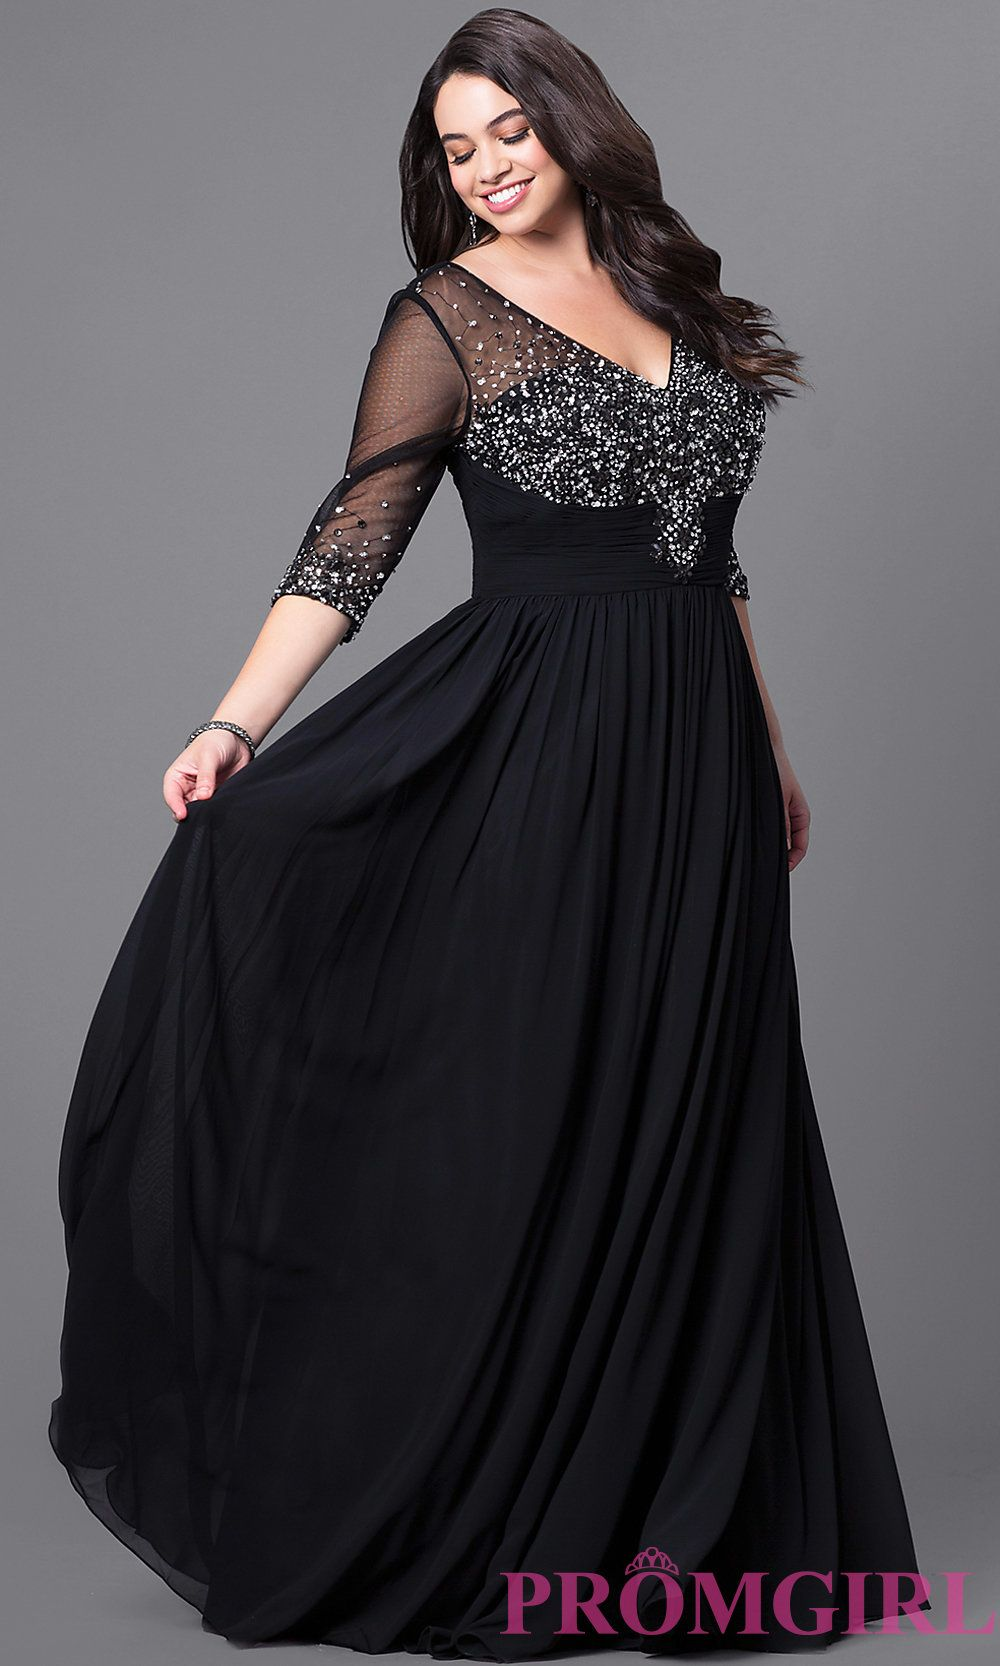 Plus size party dresses for weddings  I like Style DQP from PromGirl do you like  plus size